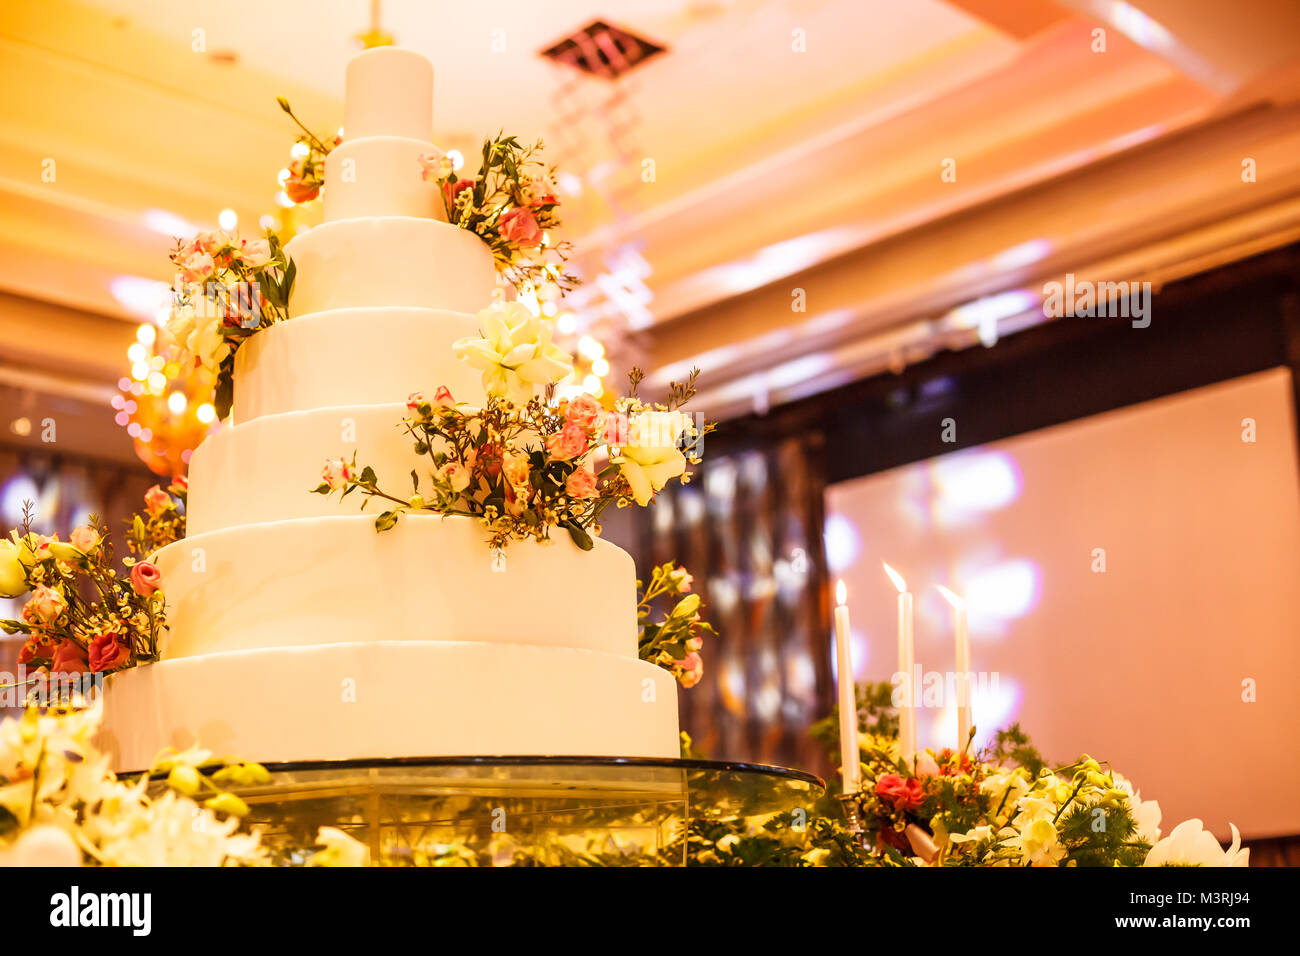 Candlestick and wedding cake on the glass table at the stage in ...